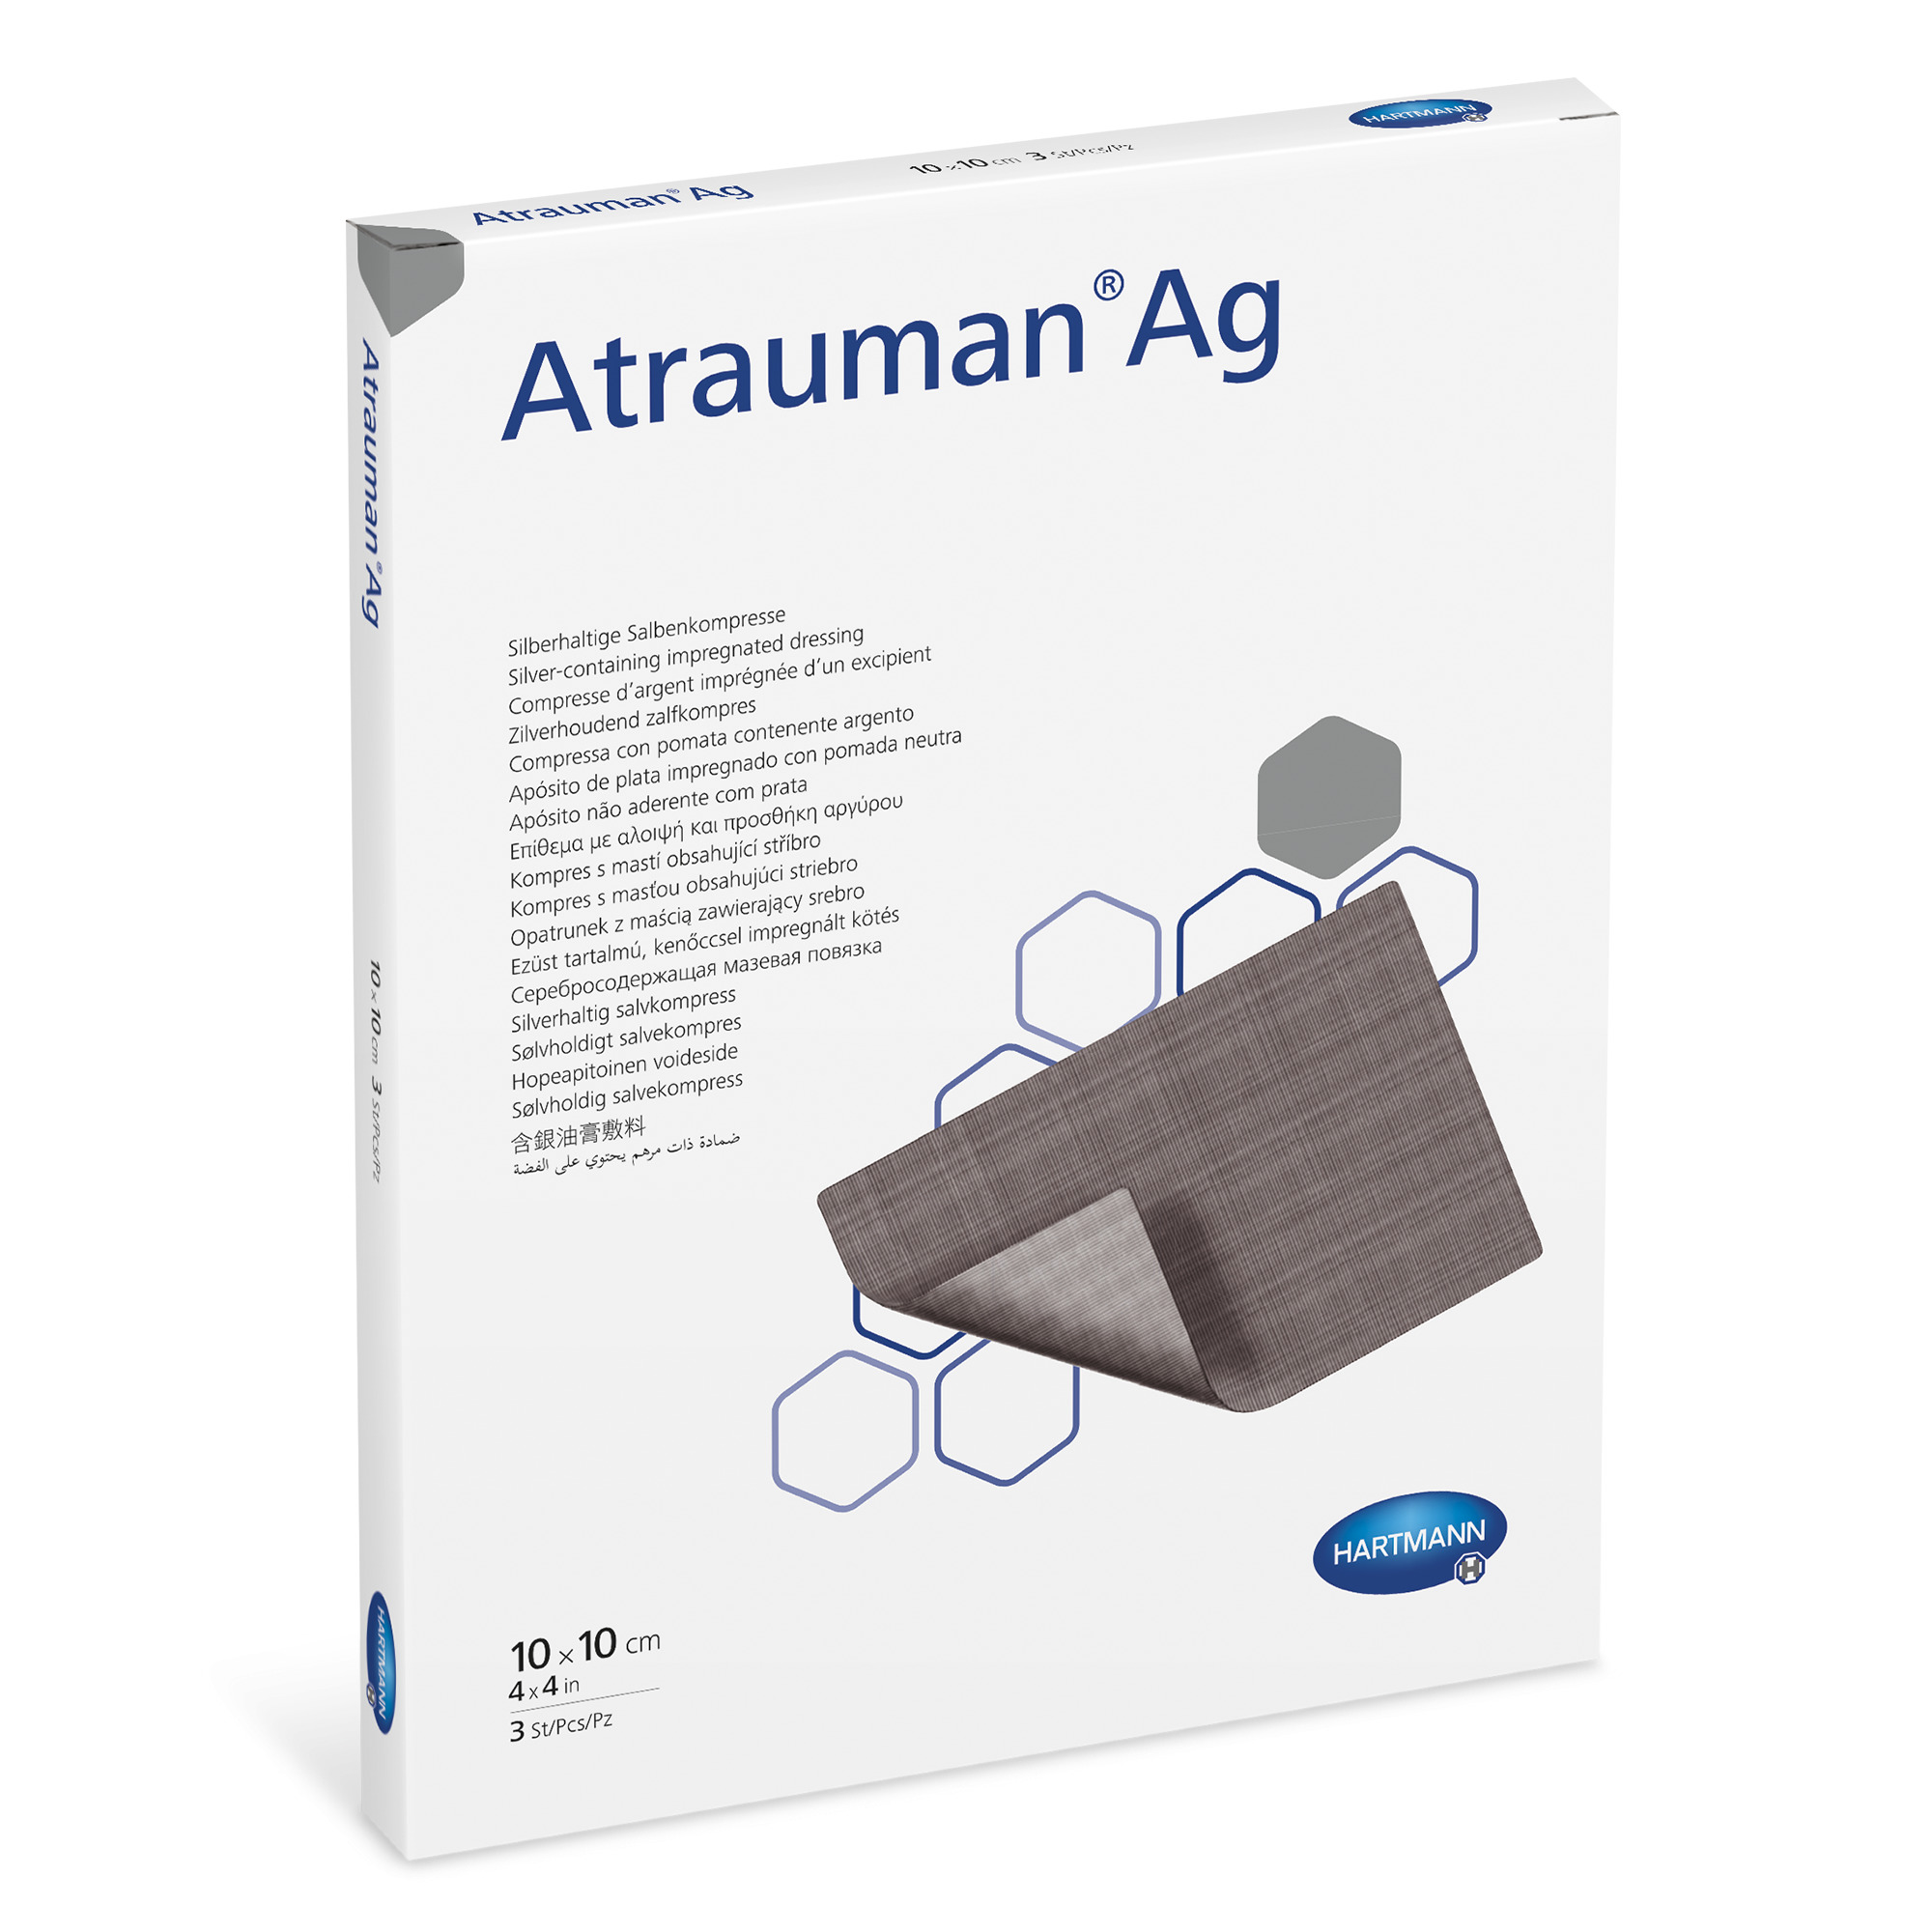 Atrauman Ag product box